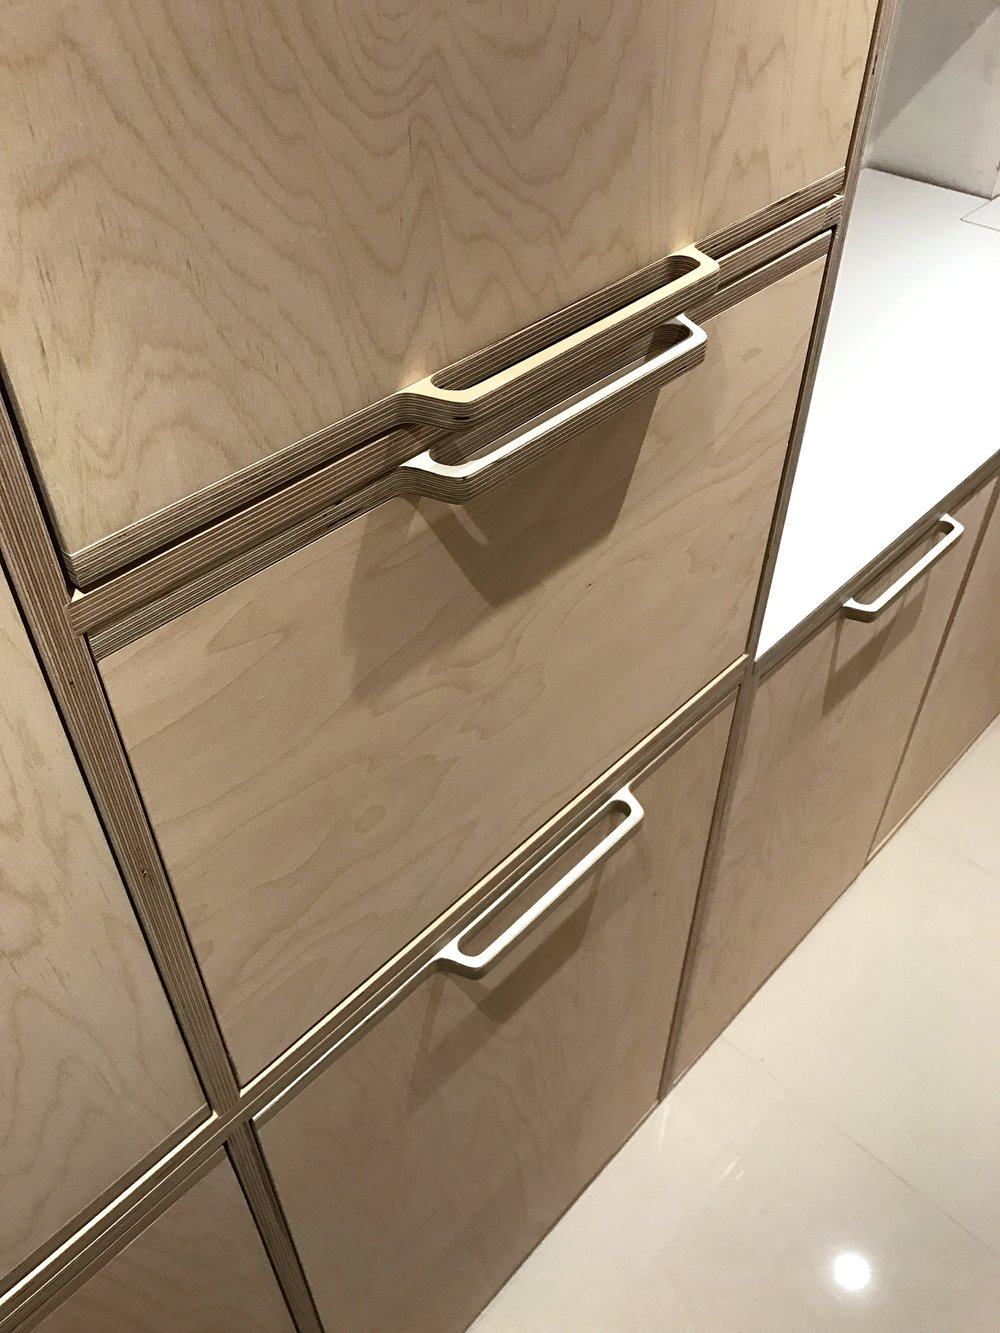 The elegant curved handle detail seen across the kitchen with a close up of the patterns seen in birch plywood veneer.